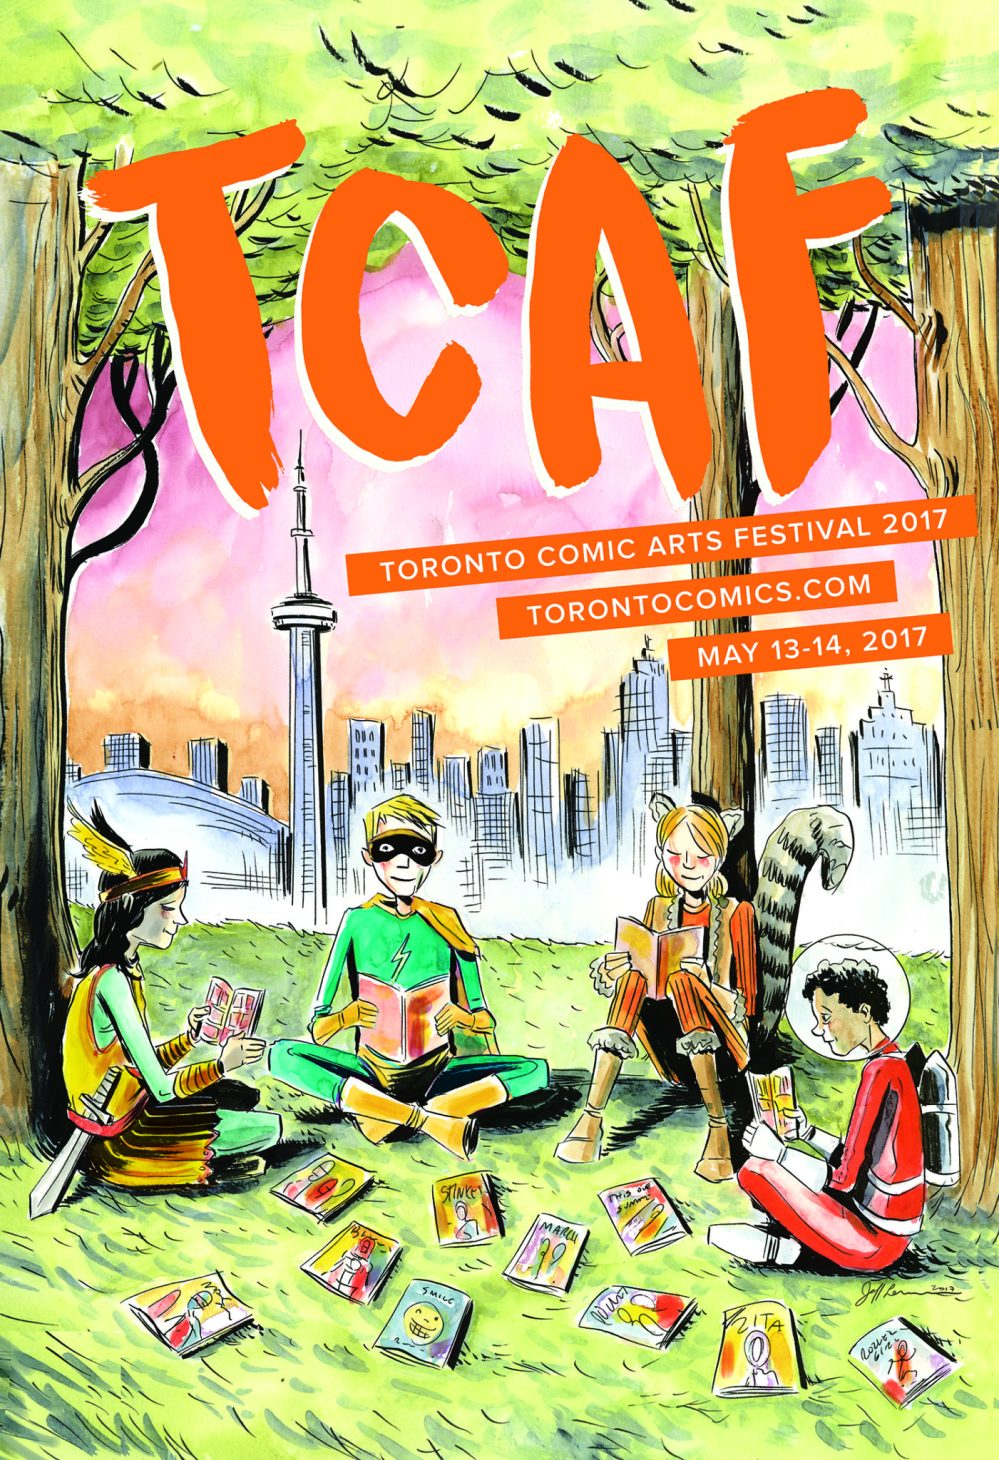 Os cartazes do Toronto Comic Arts Festival 2017, por Jeff Lemire e Sana Takeda